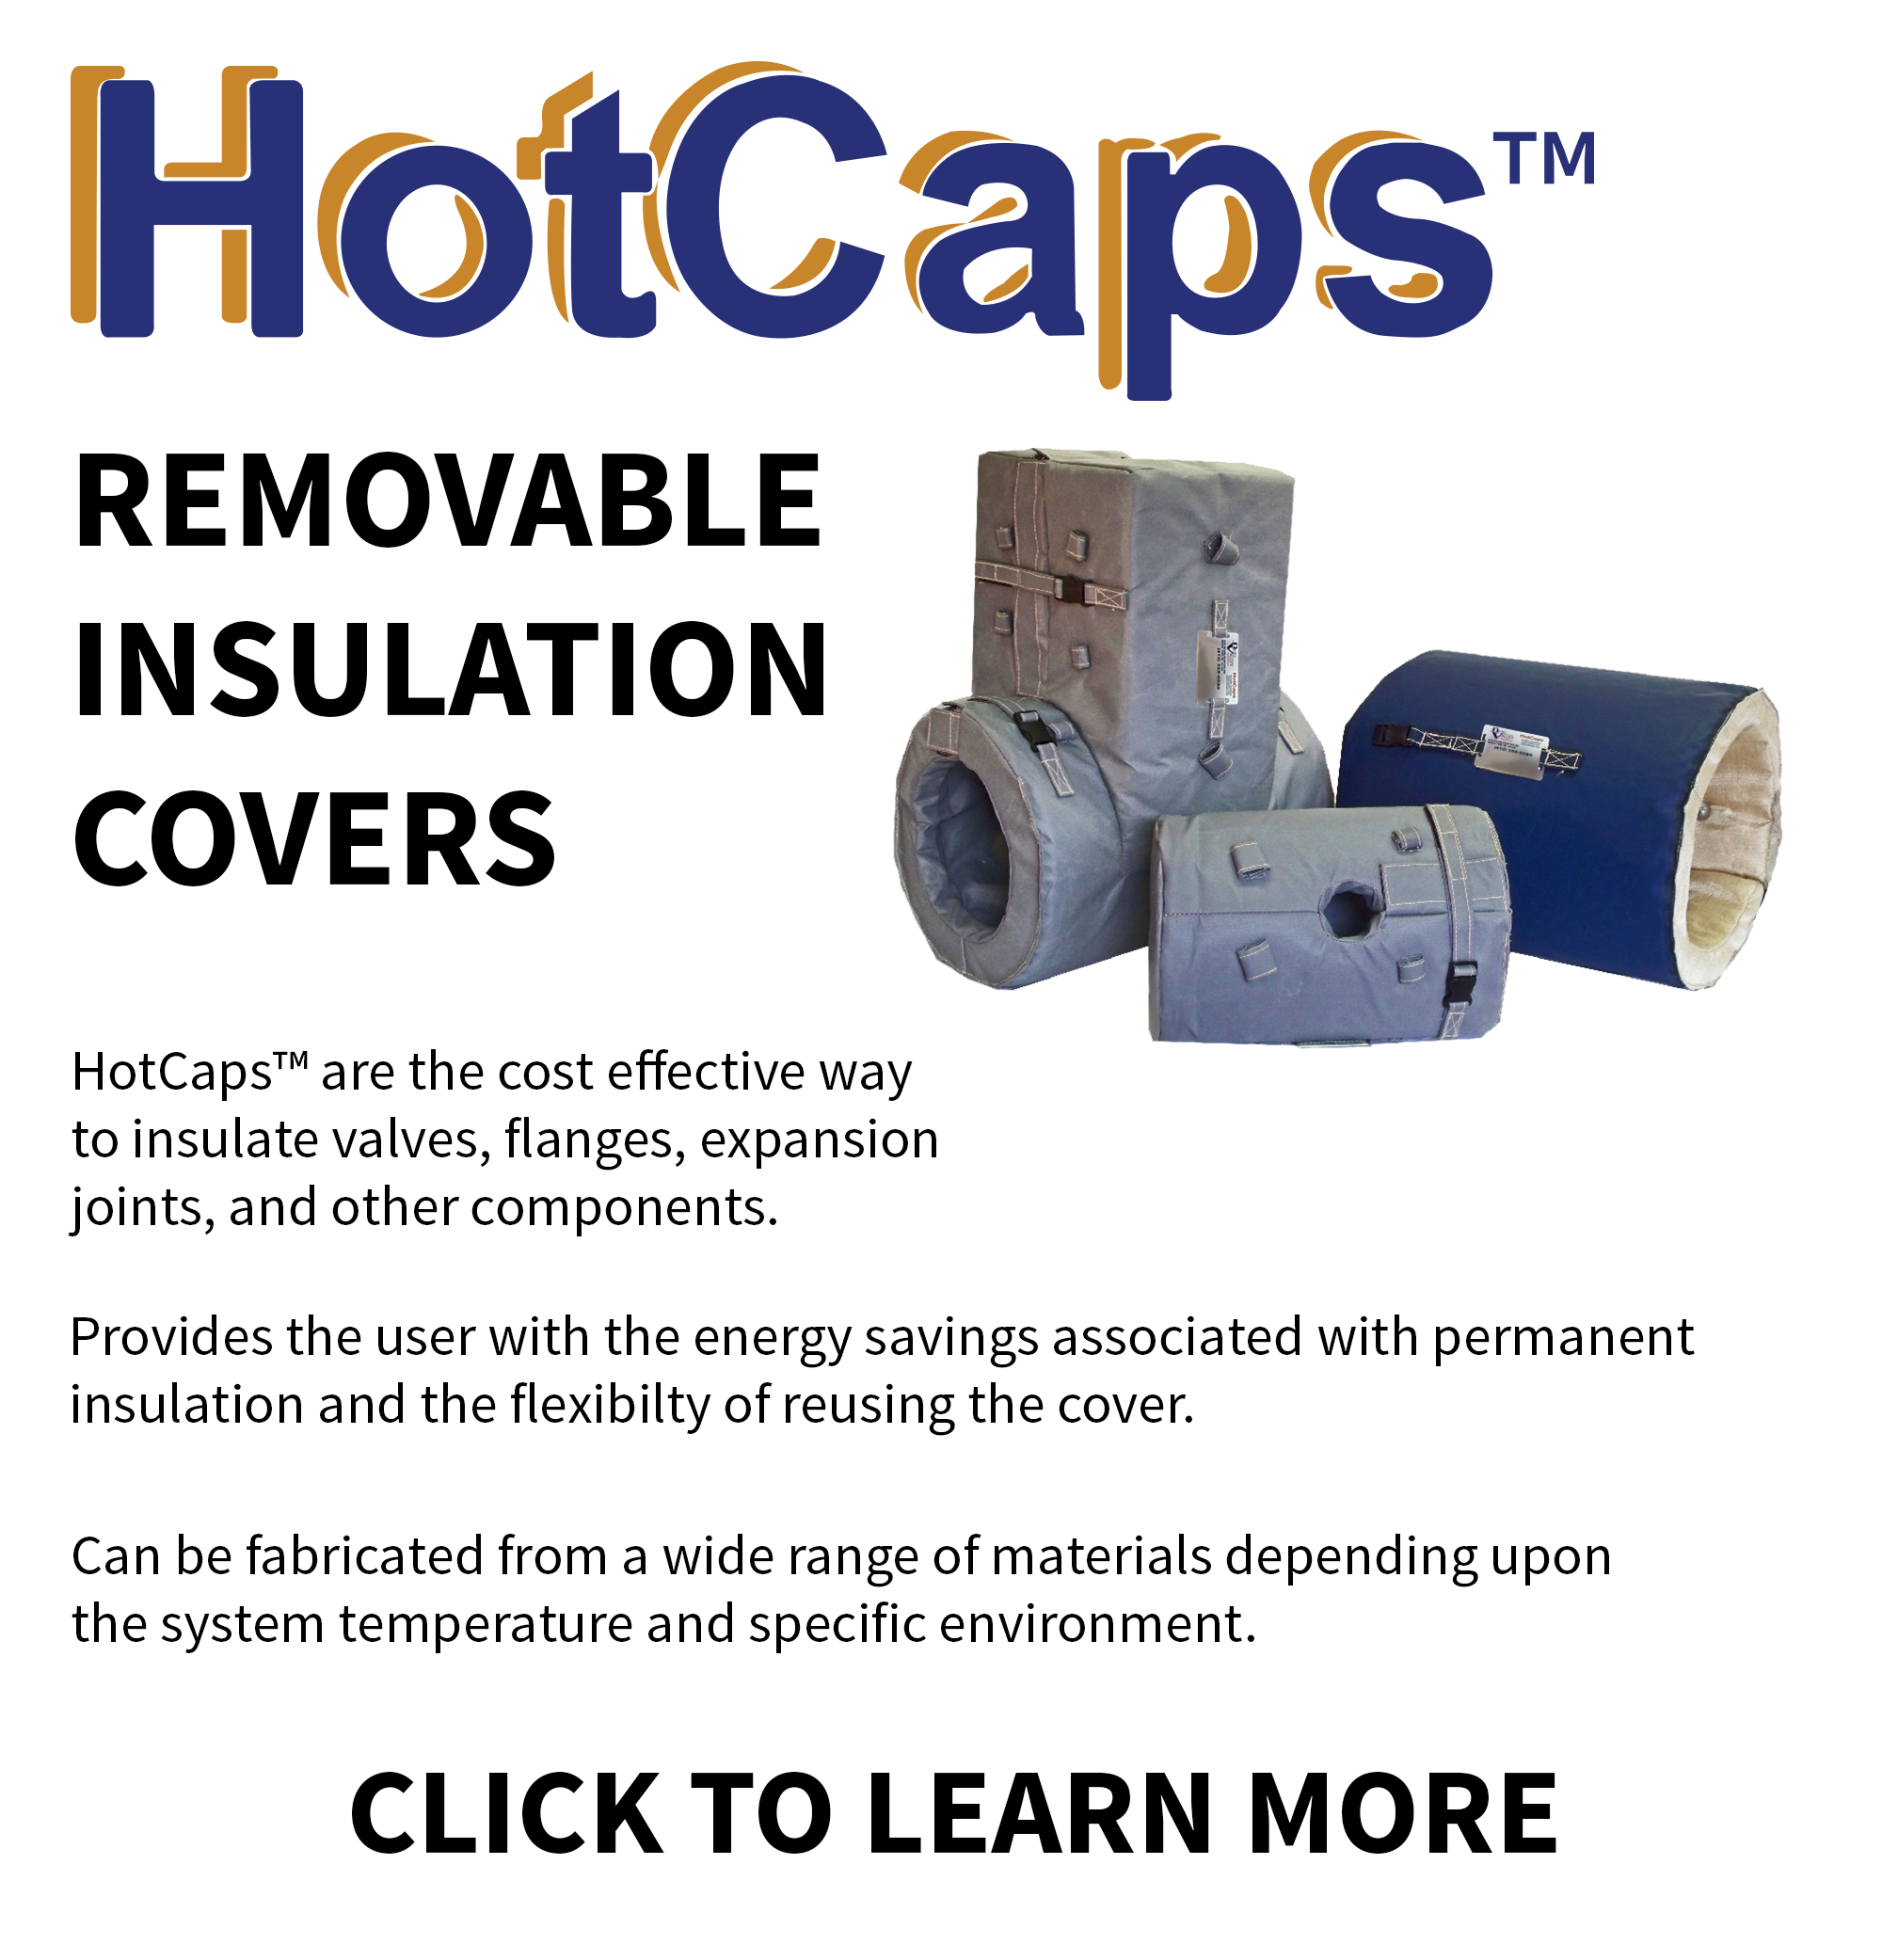 Ohio Valley Industrial Services- HotCaps™ Removable Insulation Covers